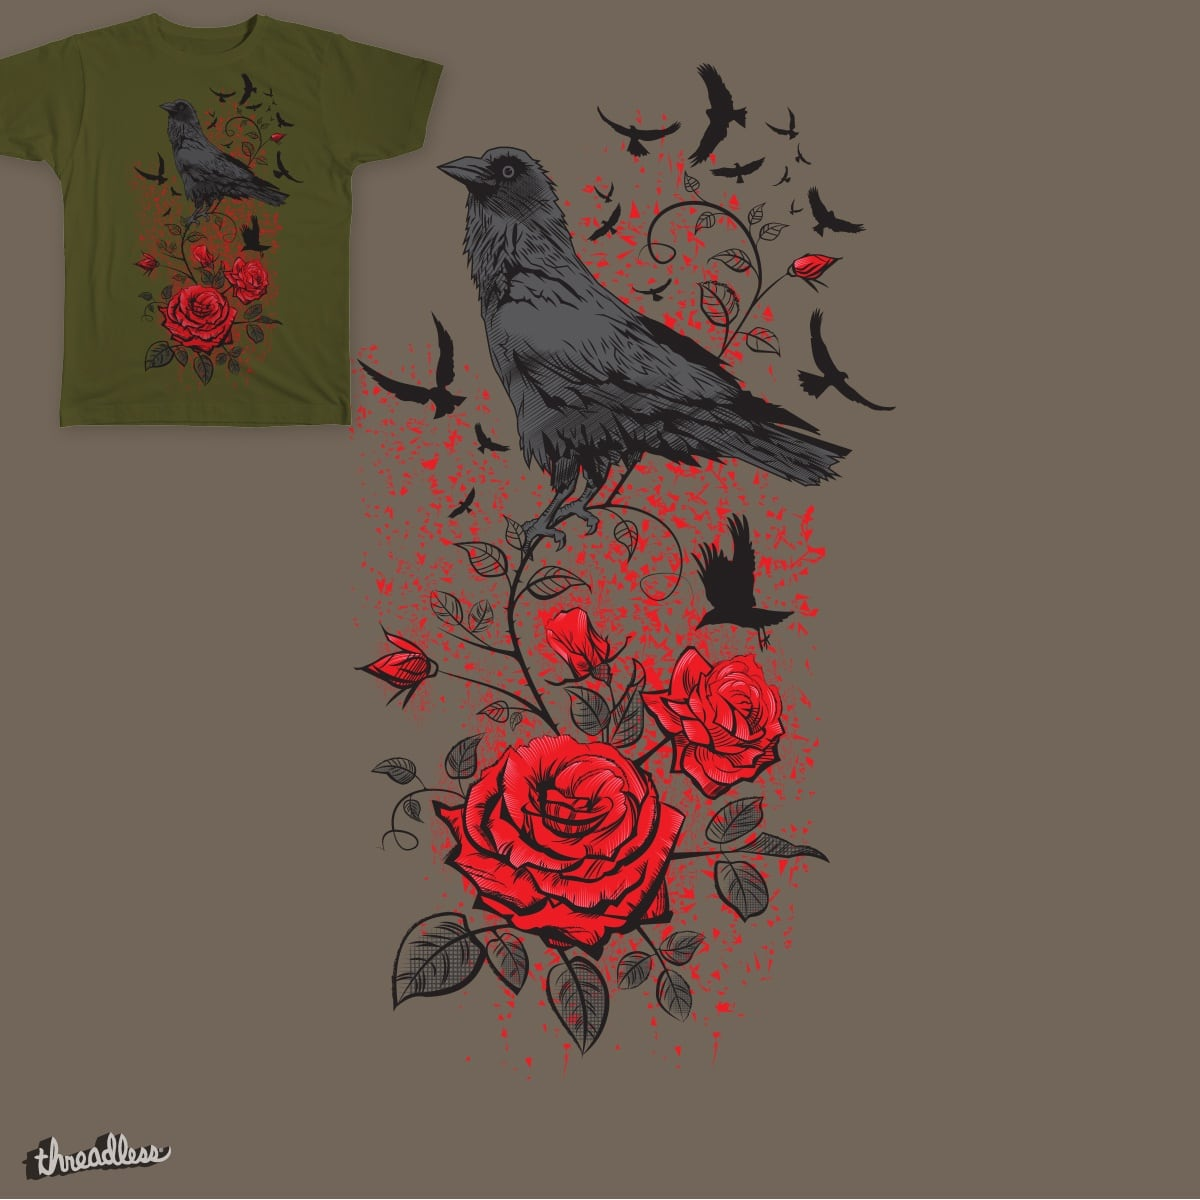 Roses and Ravens by Yurgen on Threadless